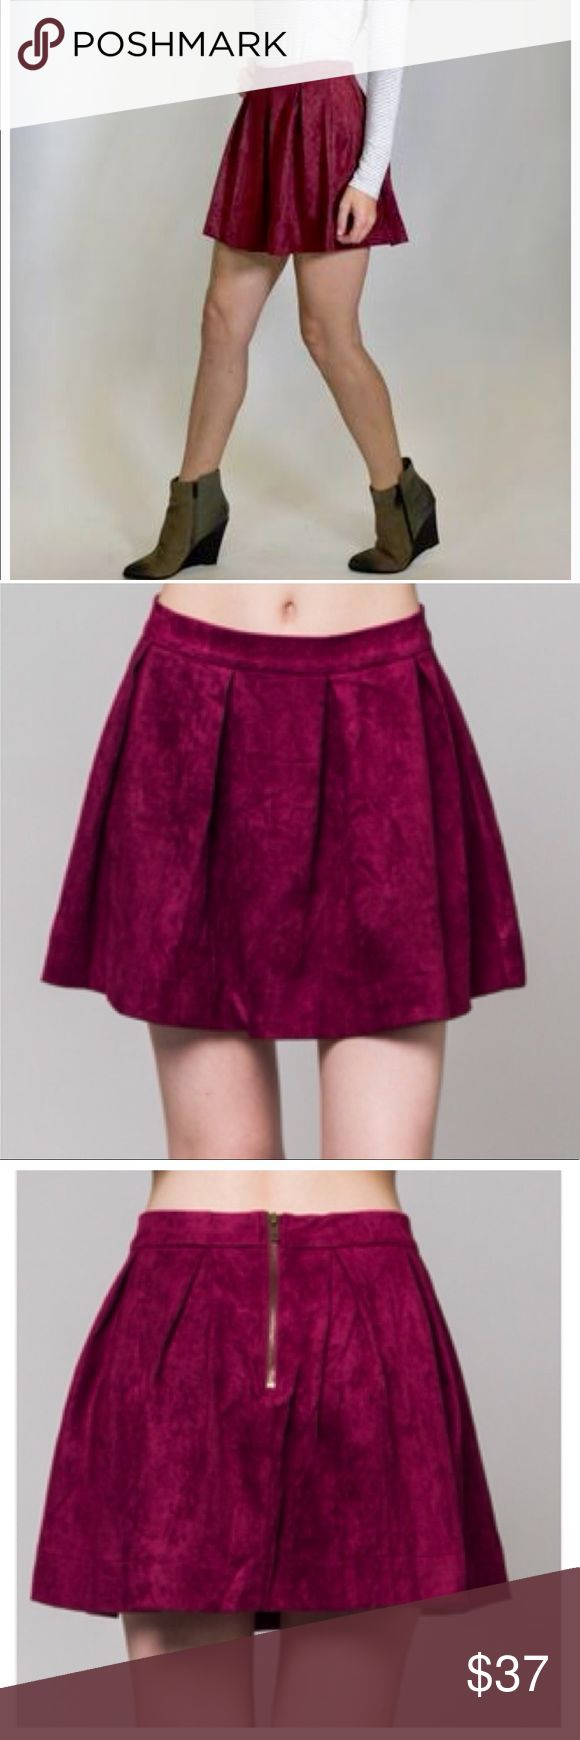 Jackie's Pleated Suede Skirt Every girl needs a sublimely soft faux suede skirt for the fall season, and this skirt is just right. Burgandy color  Faux Suede Skirt Pleated Skater Skirt Waistband with Exposed Back Zipper 100% Polyester REASONABLE offers are welcome. Bundles of 1 will be IGNORED. ❌ ❌Sorry no trades. Honey Punch Skirts Mini